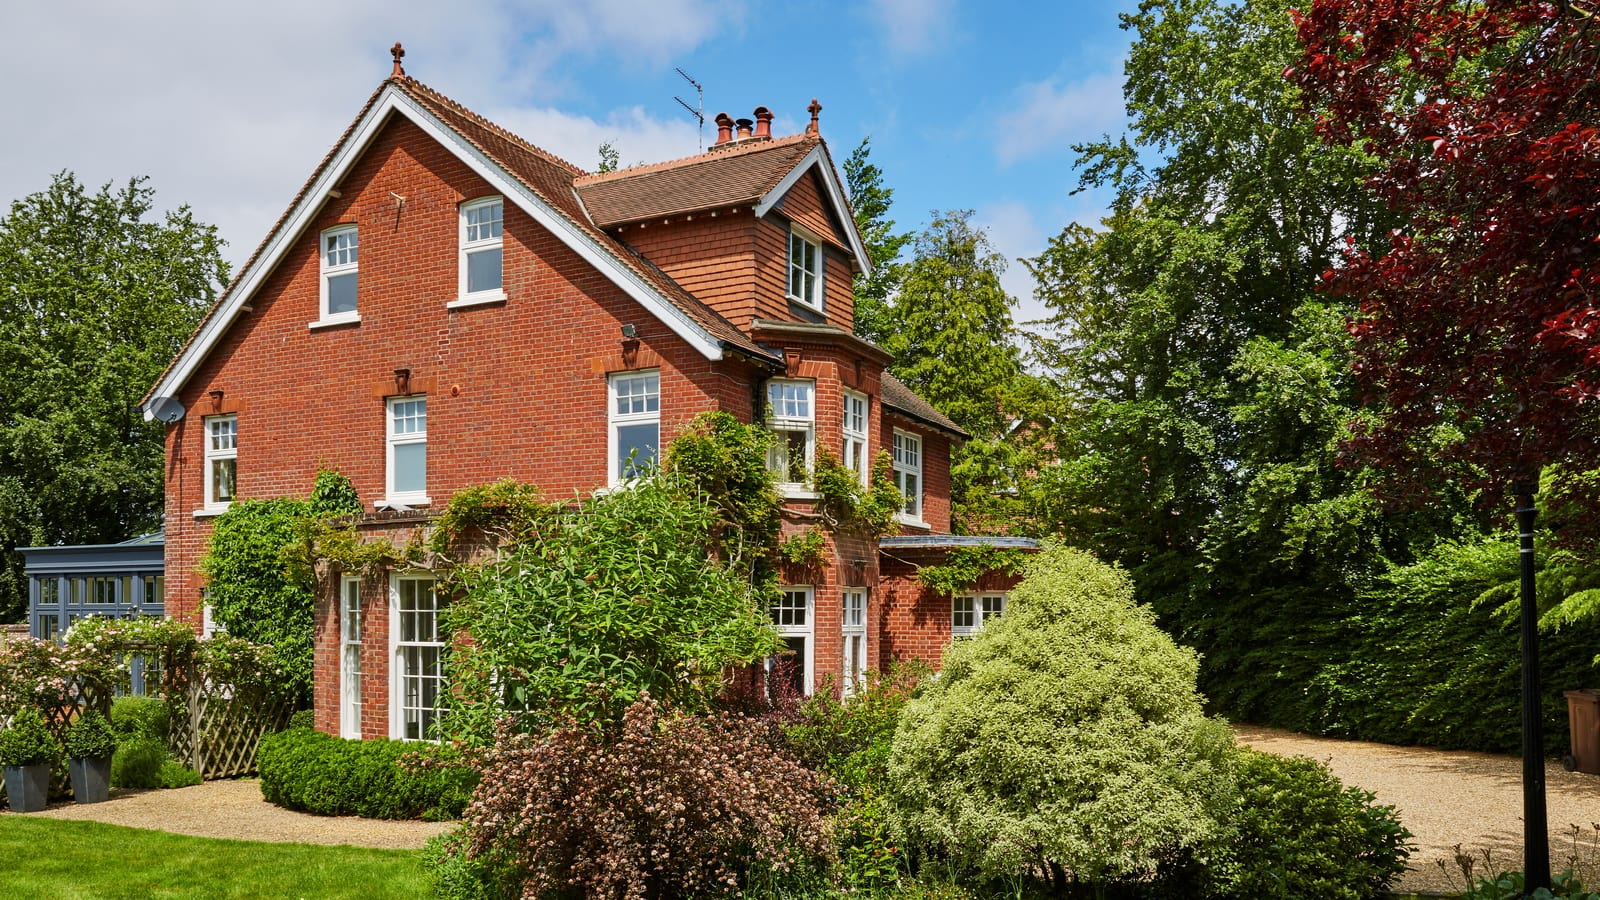 Timber Casement Windows Restore Edwardian Style to This Family Home